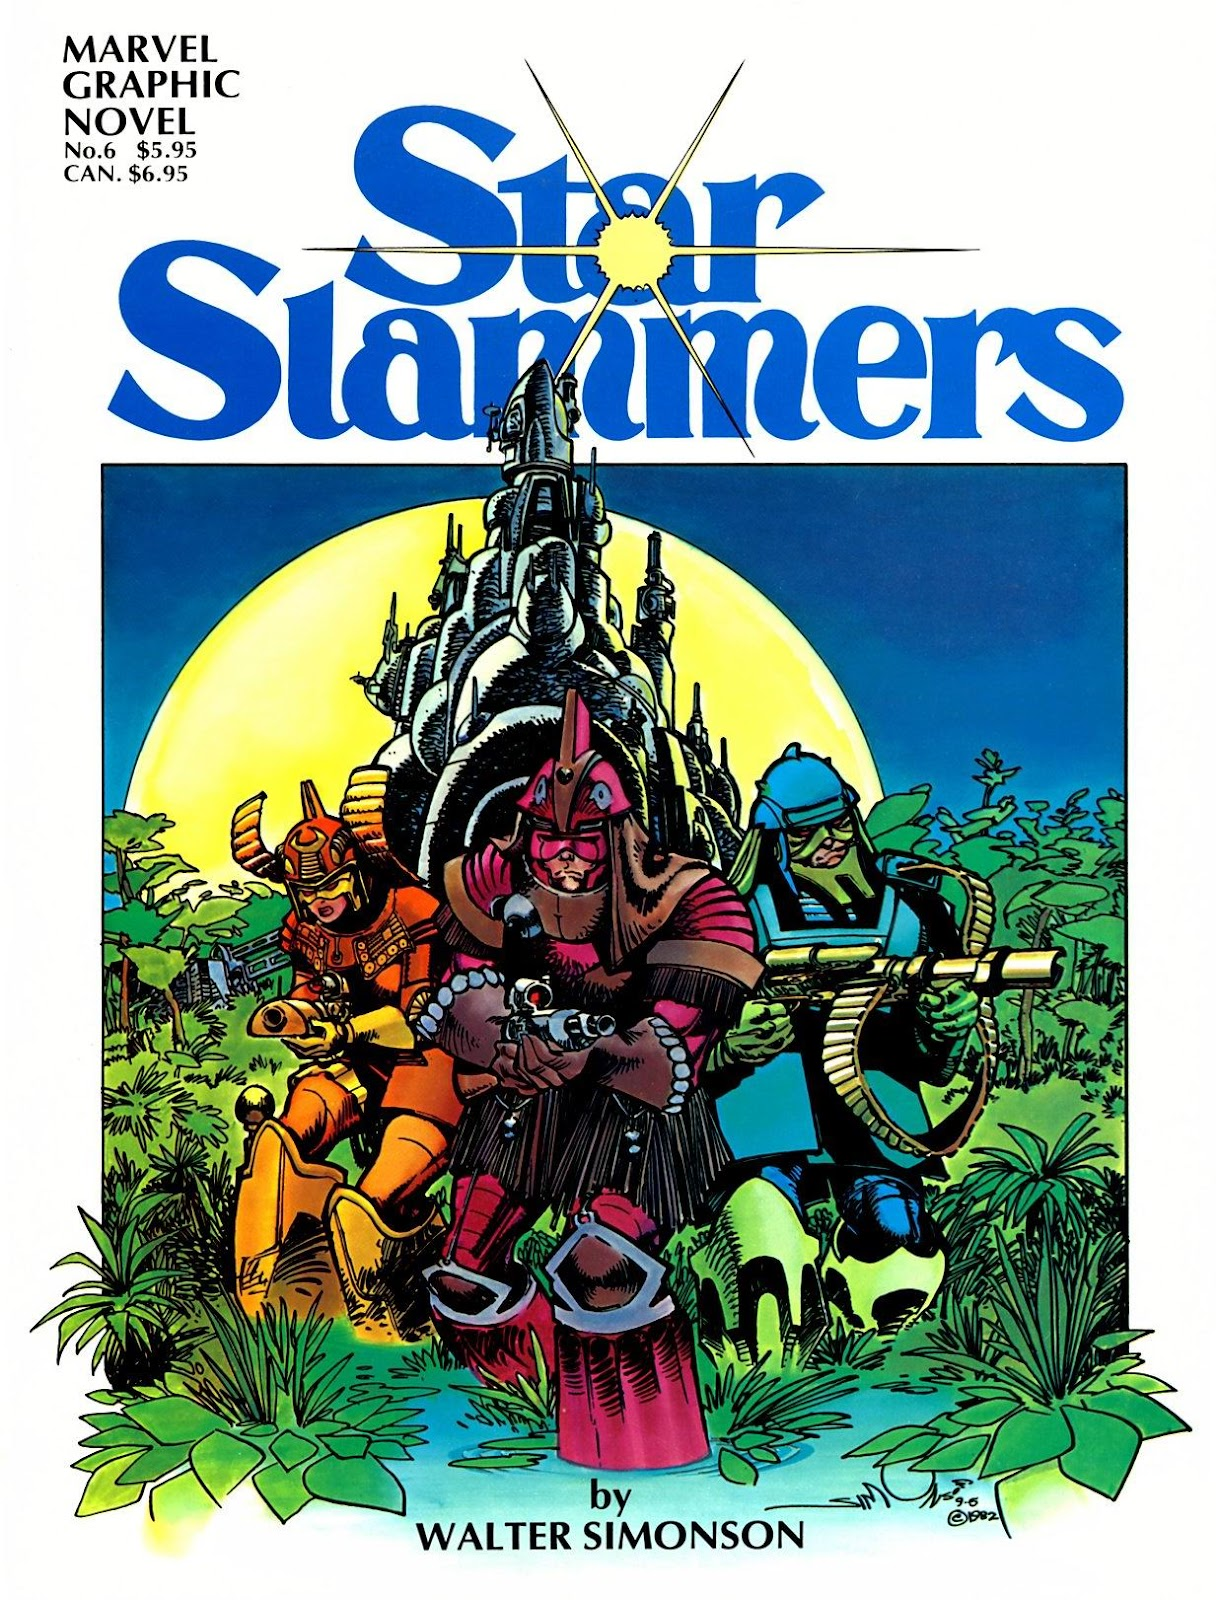 Marvel Graphic Novel 6_-_The_Star_Slammers Page 1